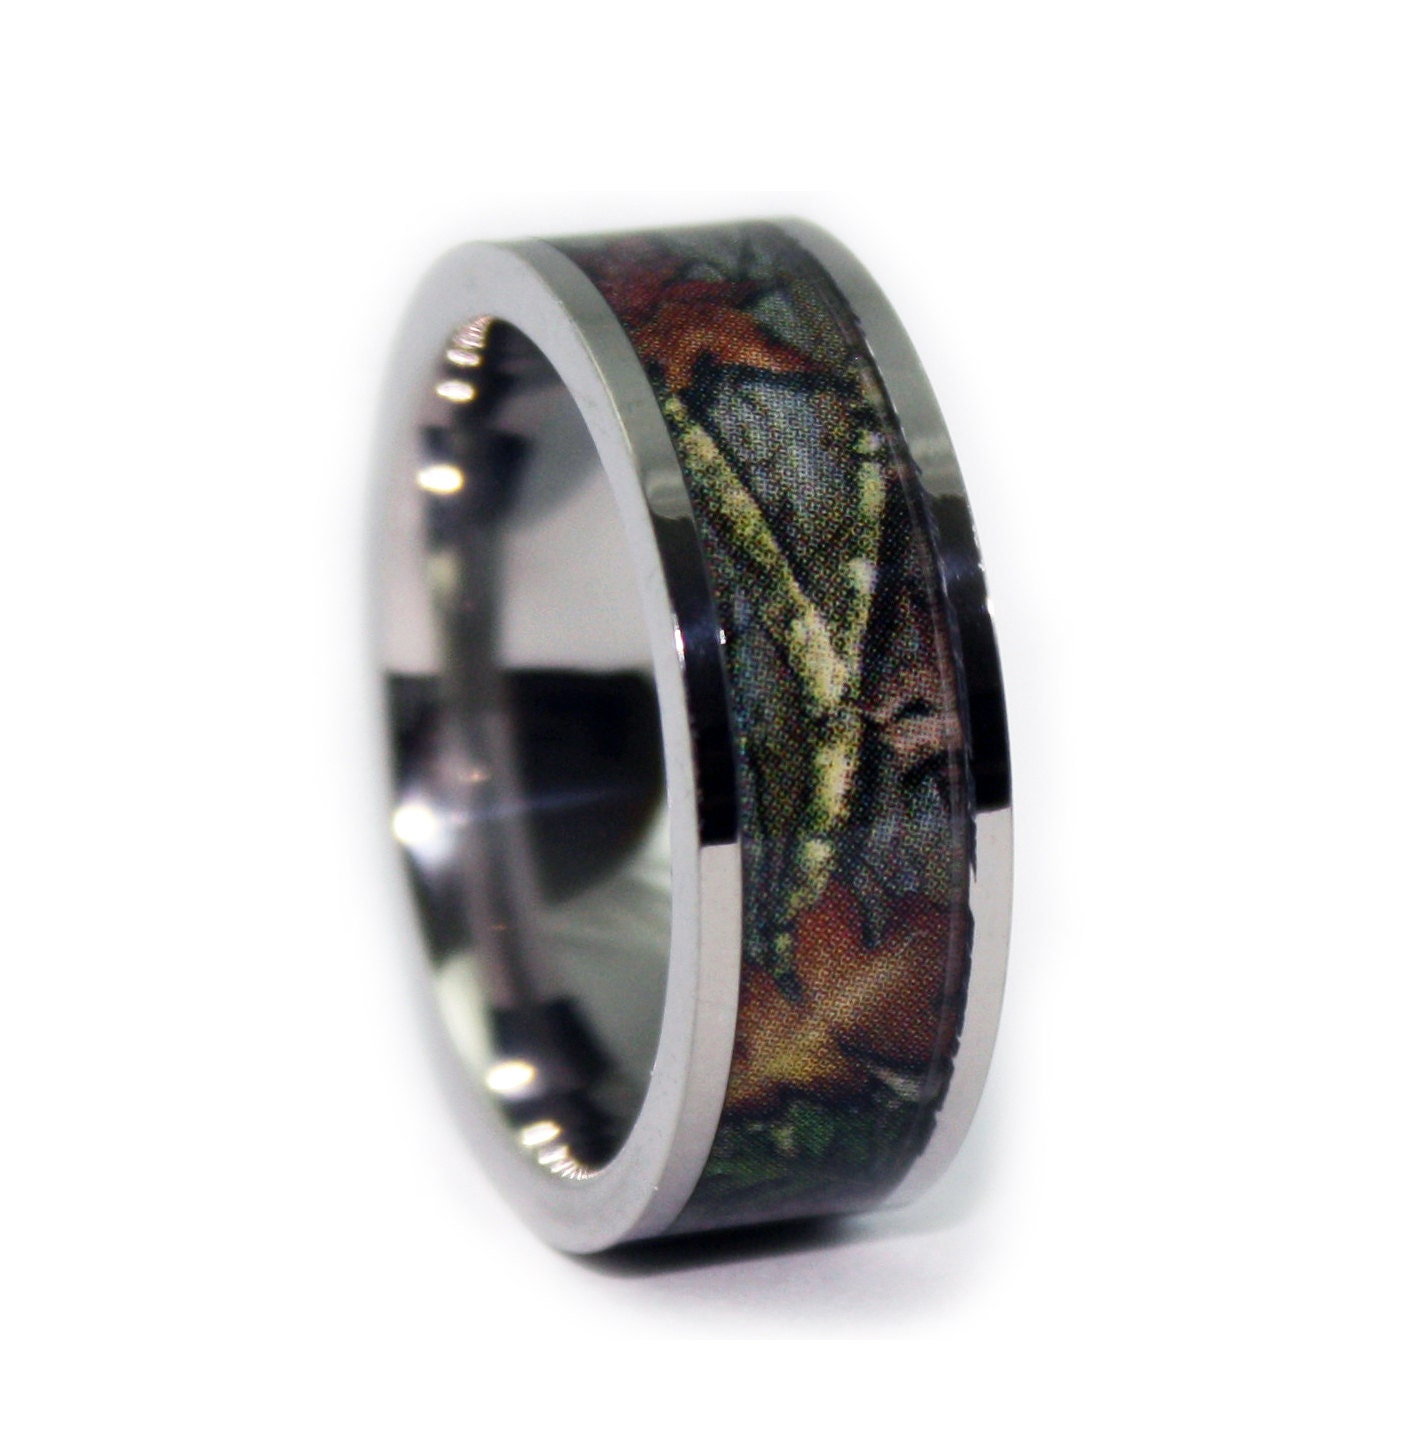 rings wedding by product ring quotes duck bible band custom laser engraved mens outdoor banded